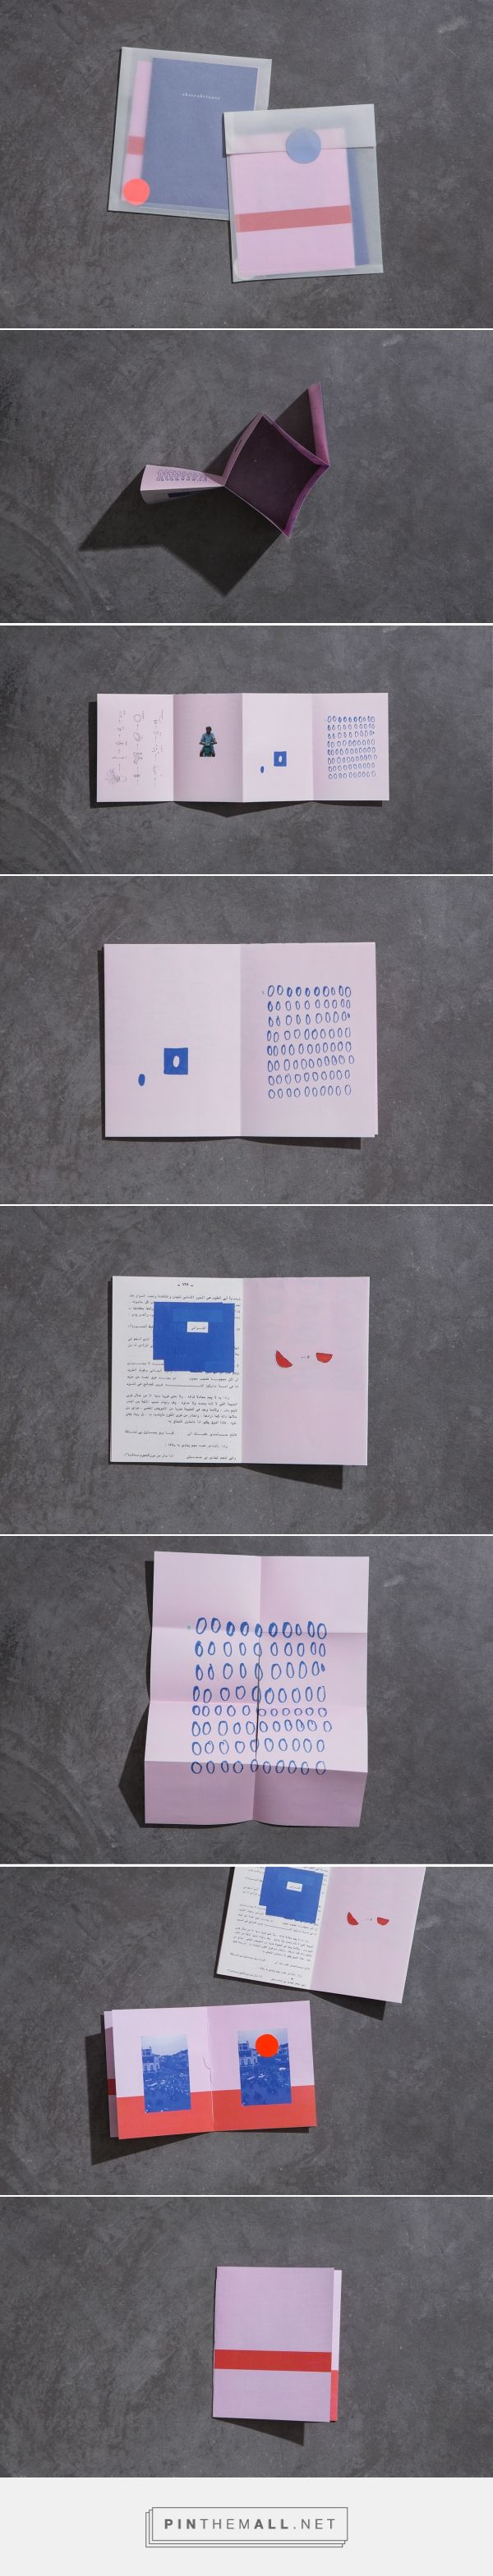 A graphic study of abstractions - zine on Behance... - a grouped images picture - Pin Them All